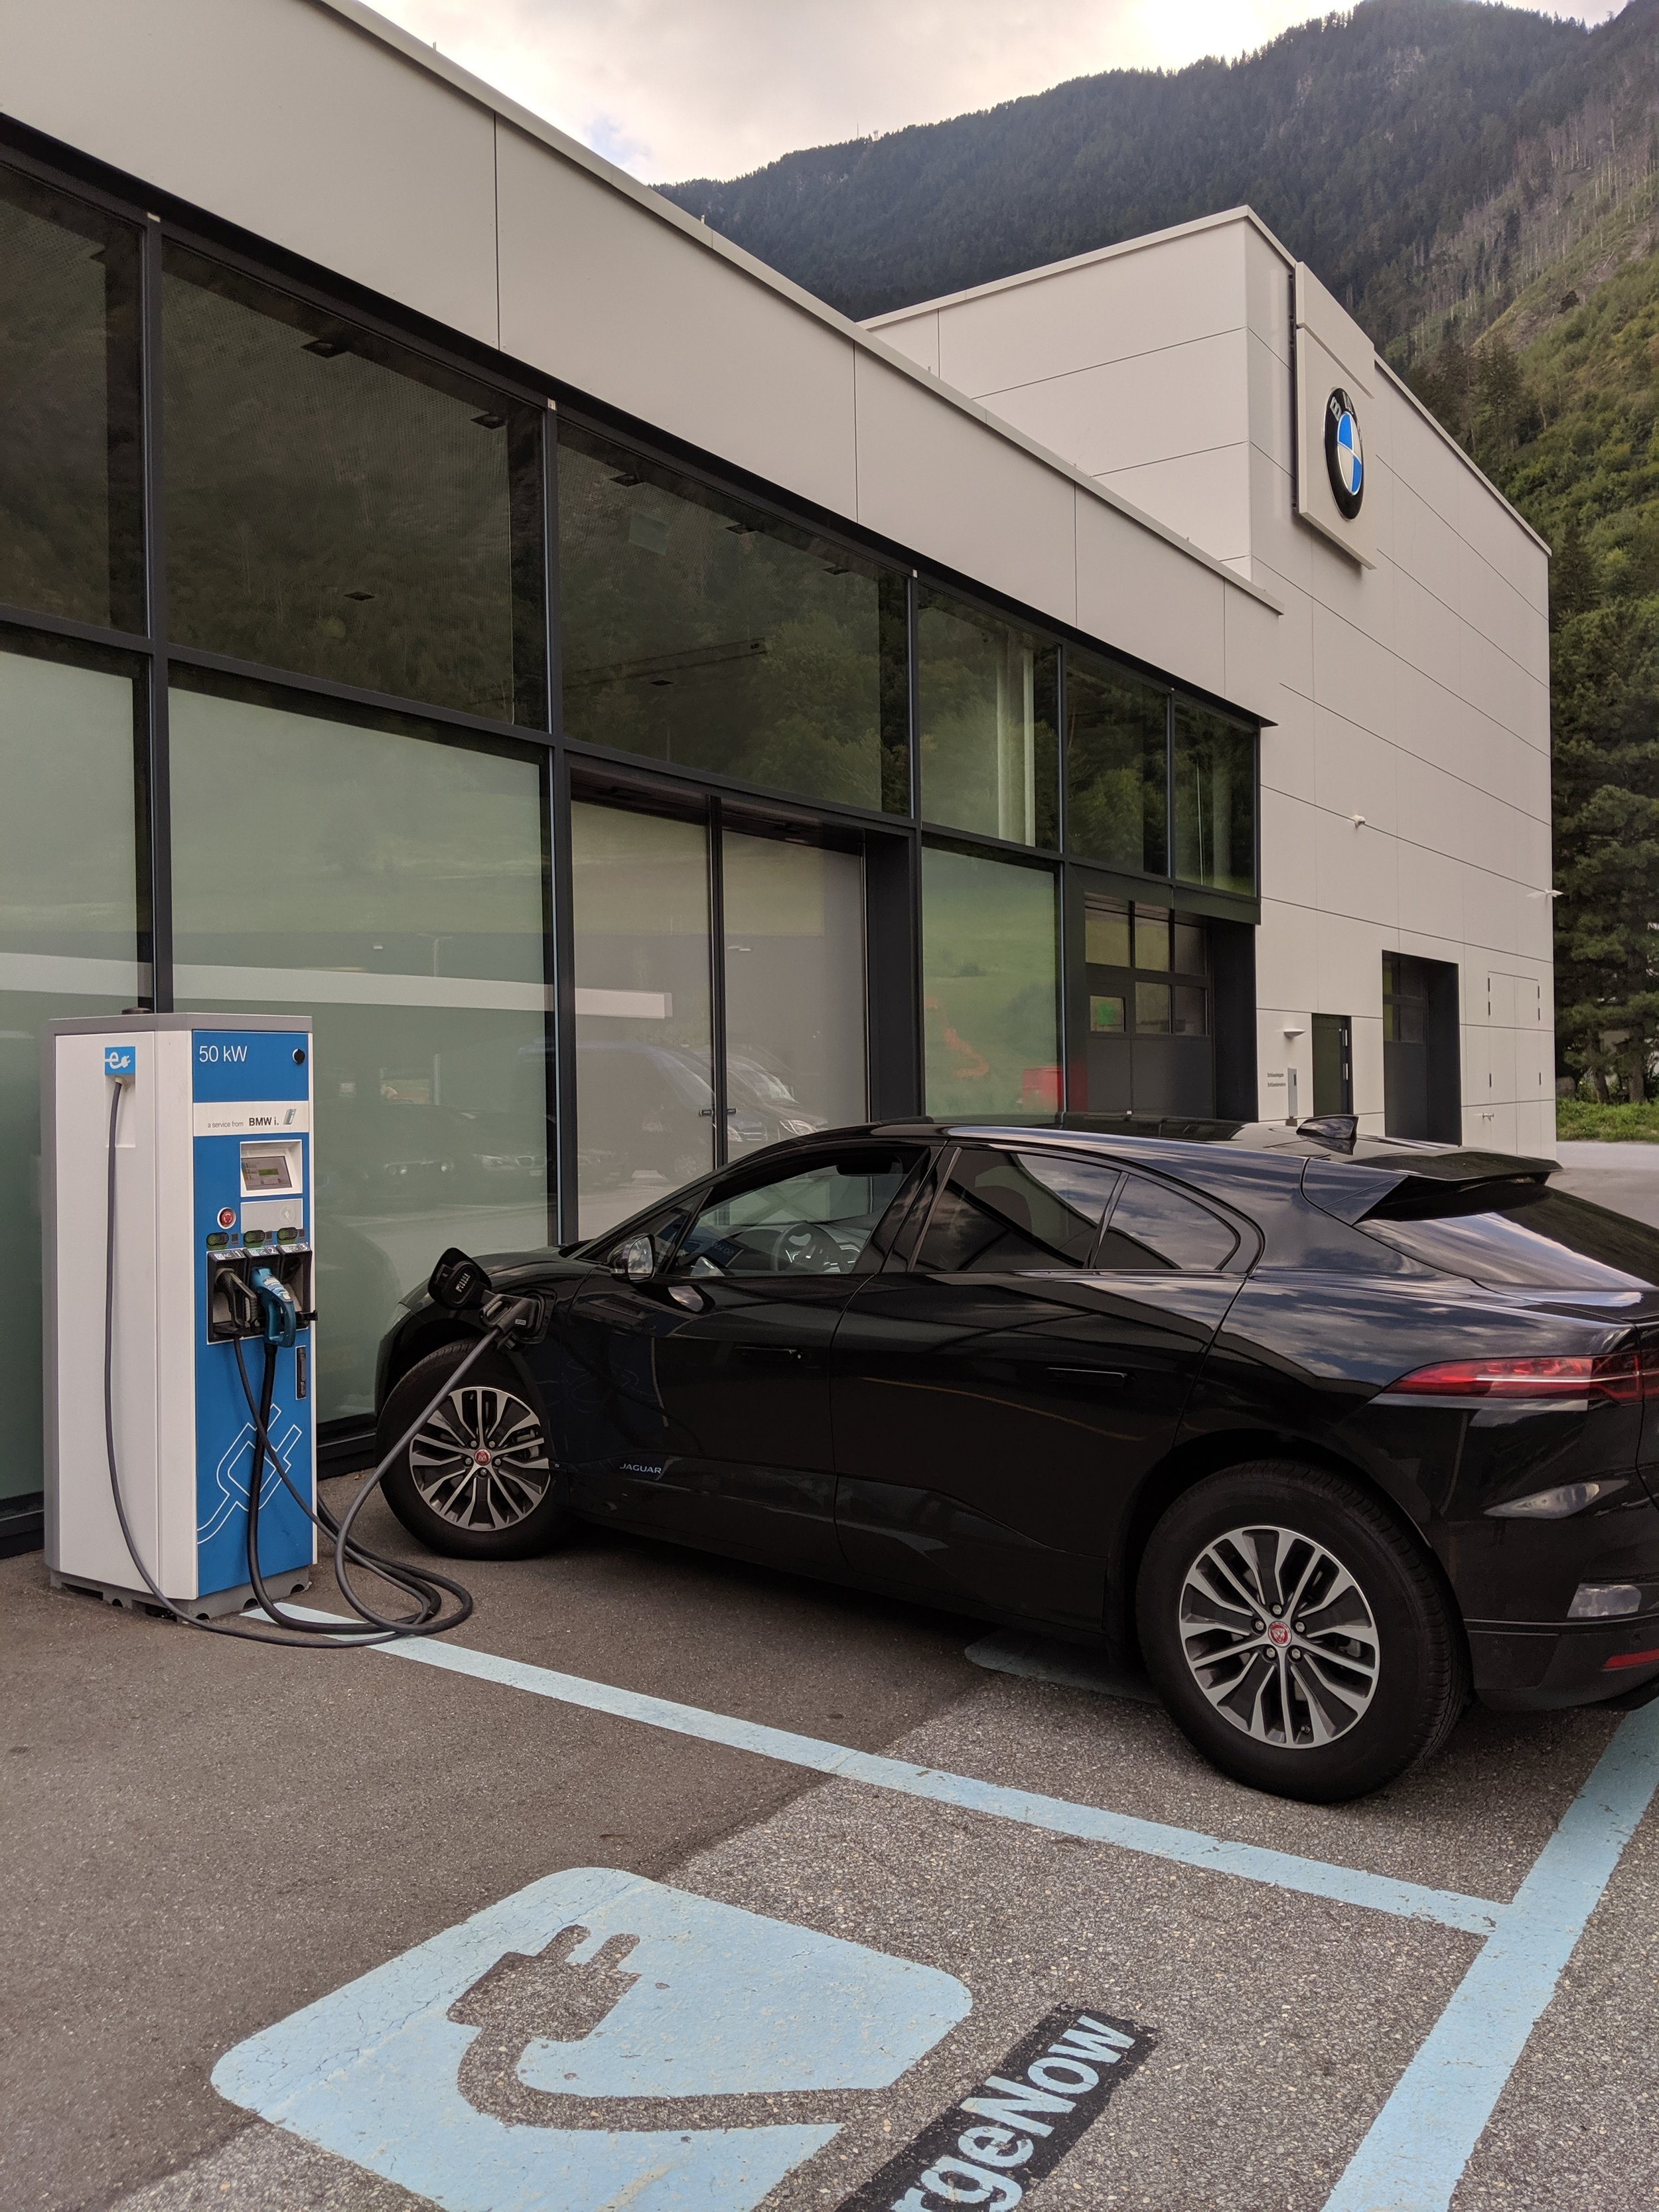 Charging up before heading home (to lower the cost of electricity at the house we're staying at).  ACW Visp .